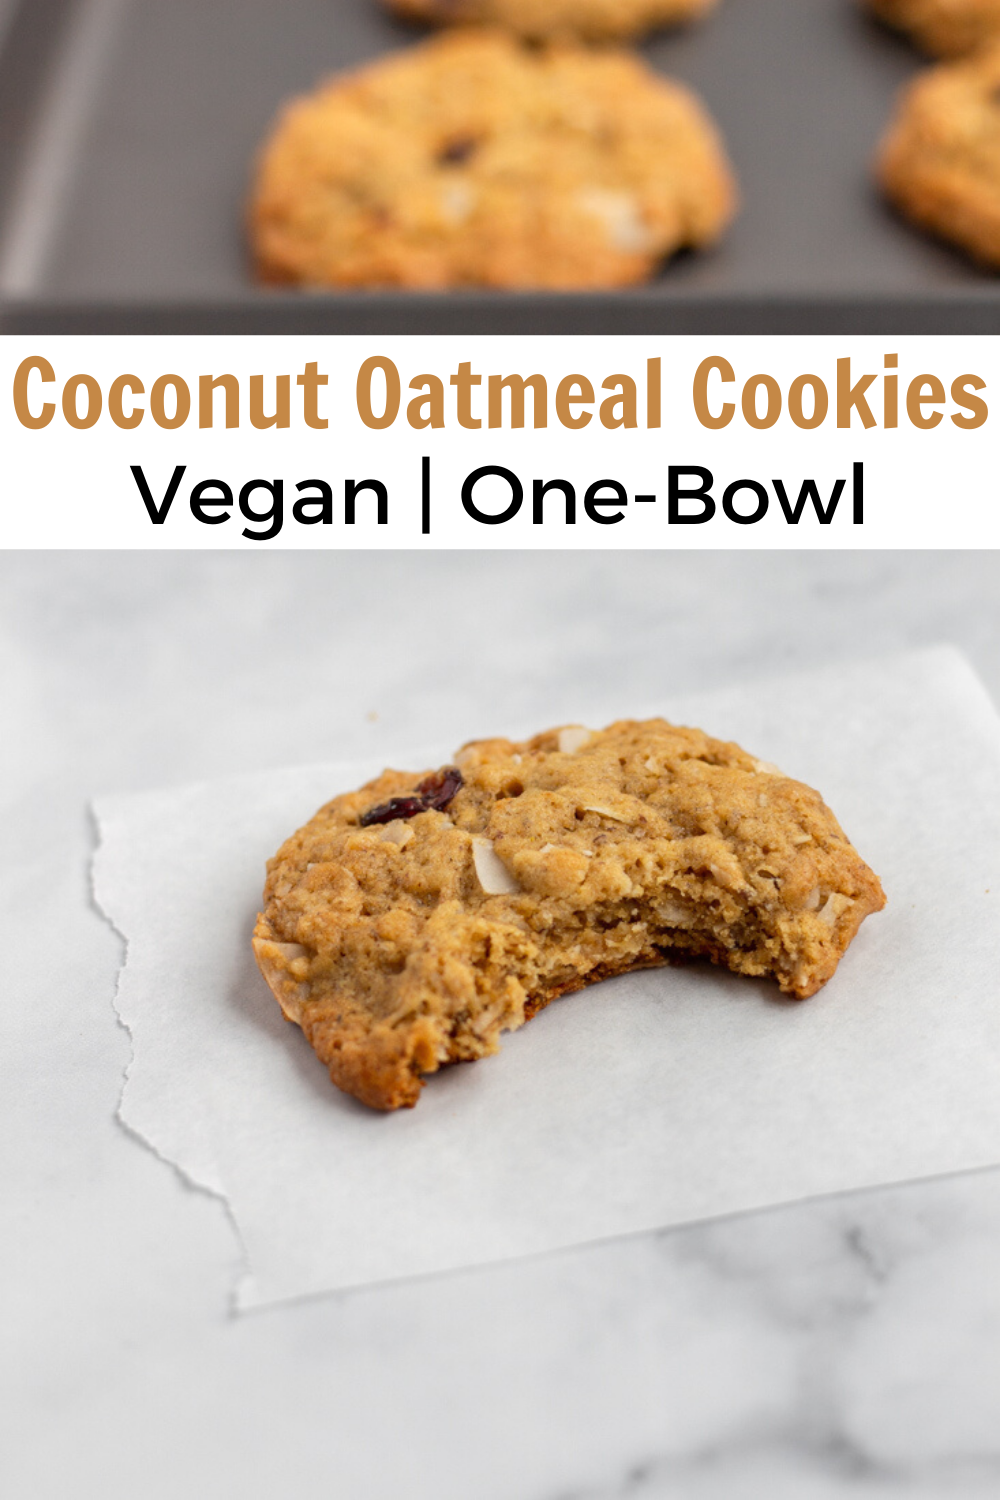 Coconut Chocolate Chip Oatmeal Cookies Vegan Such A Sweetheart Recipe In 2020 Oatmeal Chocolate Chip Cookies Vegan Cookies Chocolate Coconut